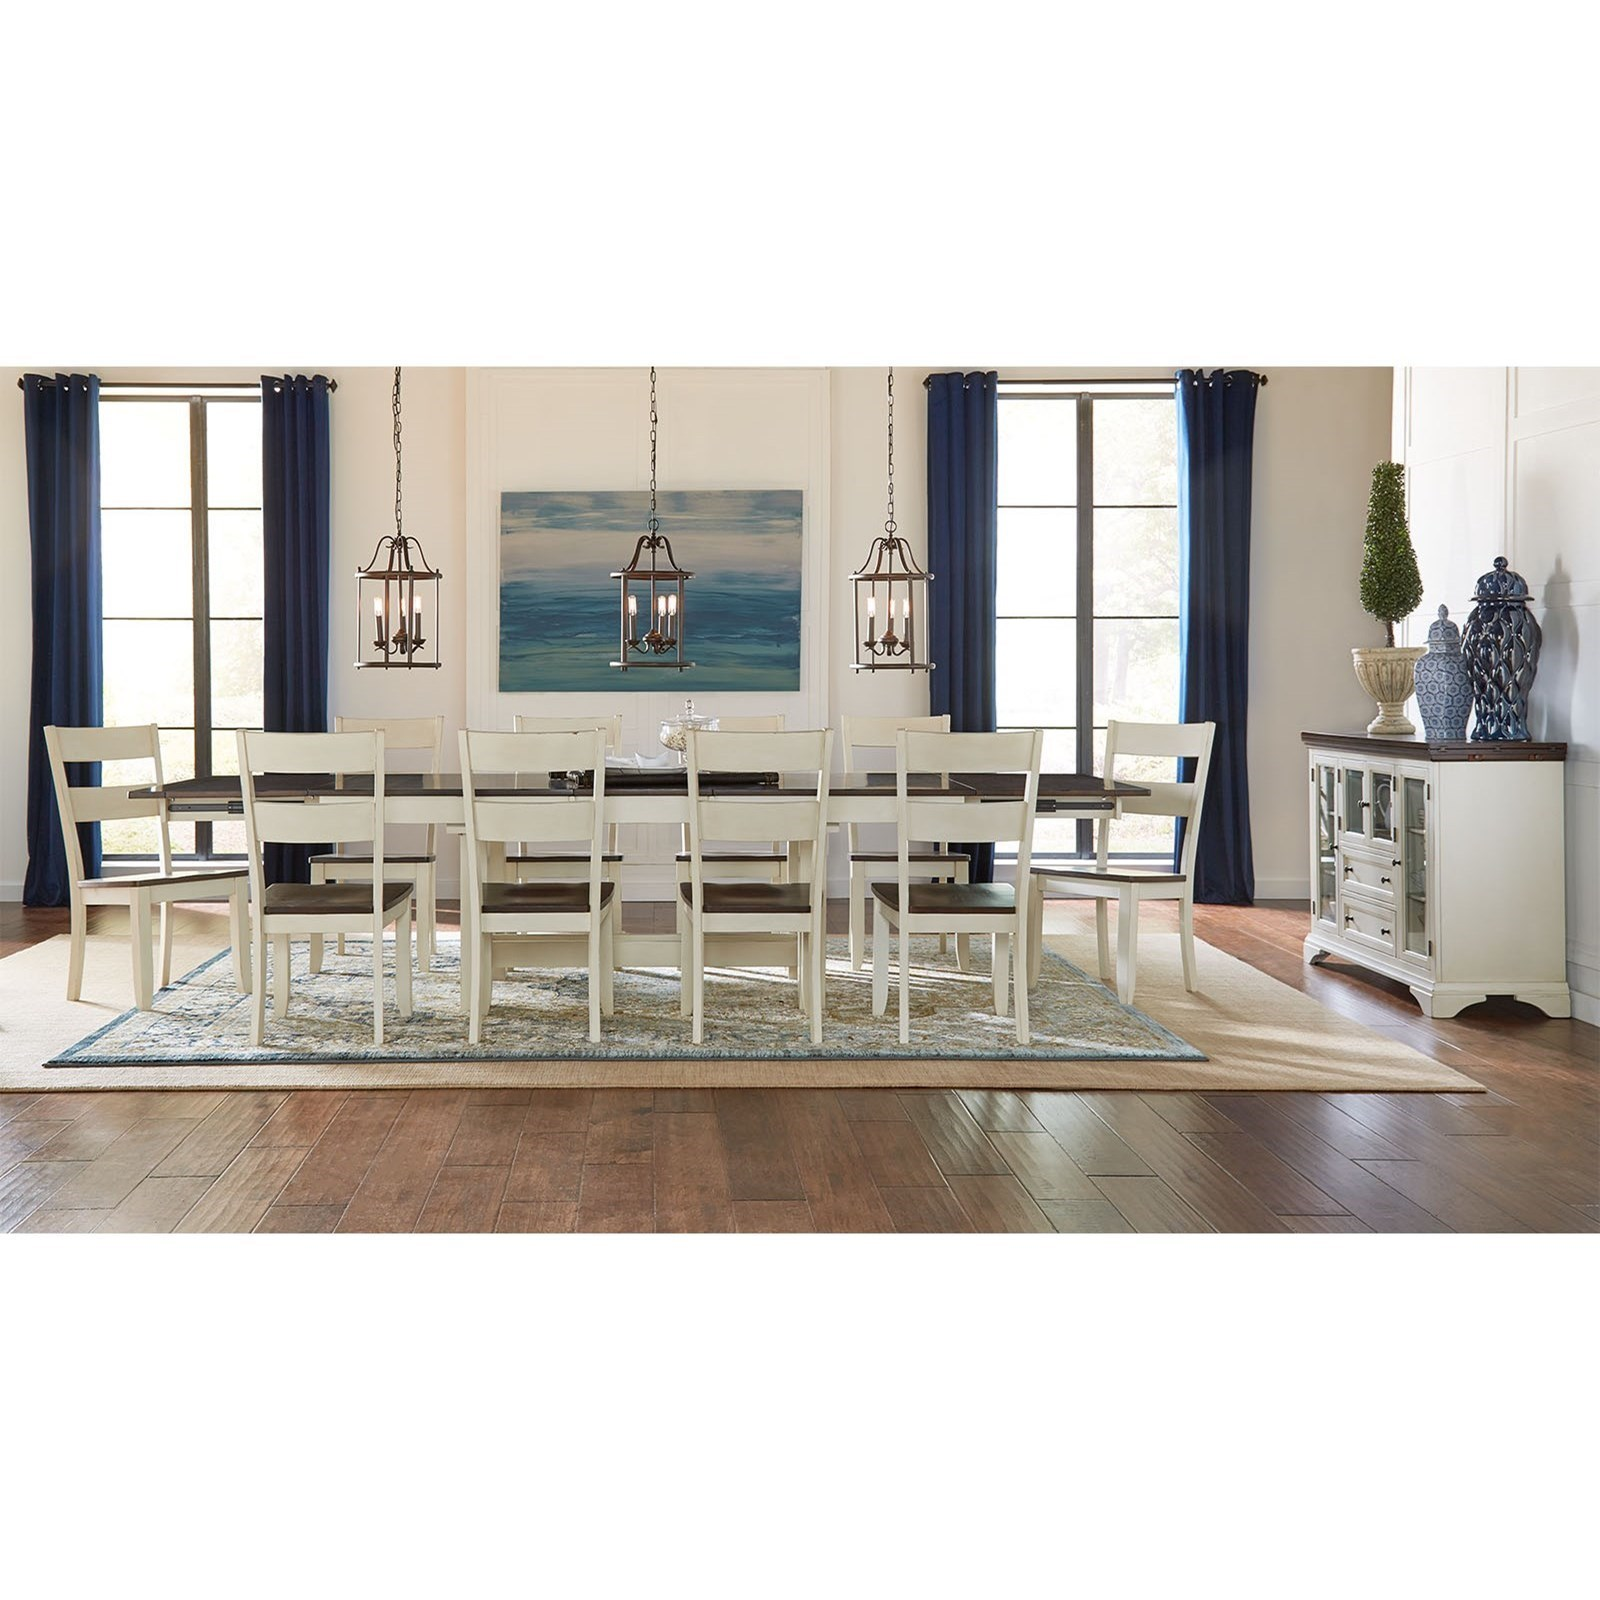 AAmerica Mariposa Casual Dining Room Group   Coconis Furniture U0026 Mattress  1st   Casual Dining Room Groups